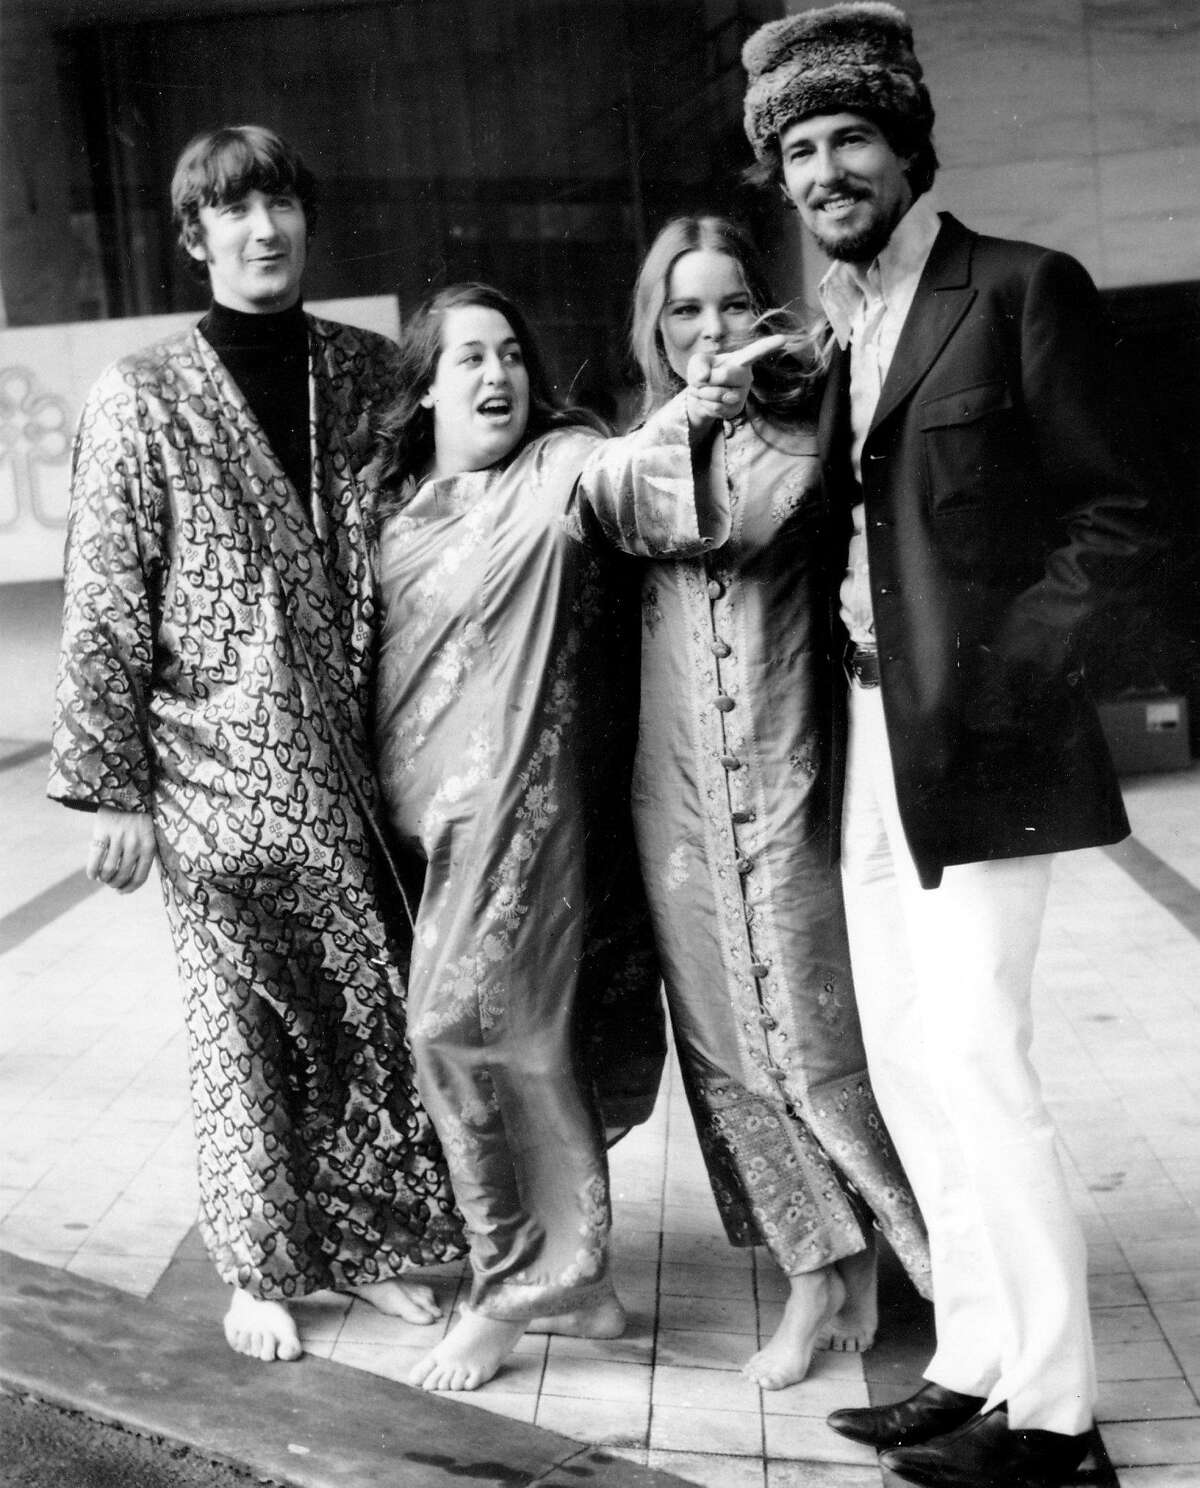 **FILE**The Mamas and the Papas pose outside a hotel after a news conference in London, England on Oct. 6, 1967. The four members are, left to right, Denny Doherty, Cass Elliot, Michele and John Phillips. His sister Frances Arnold said the singer-songwriter died at his home in Mississauga, a city just west of Toronto, on Friday, Jan. 19, 2007,after a short illness. He was 66 (AP Photo/Peter Kemp)